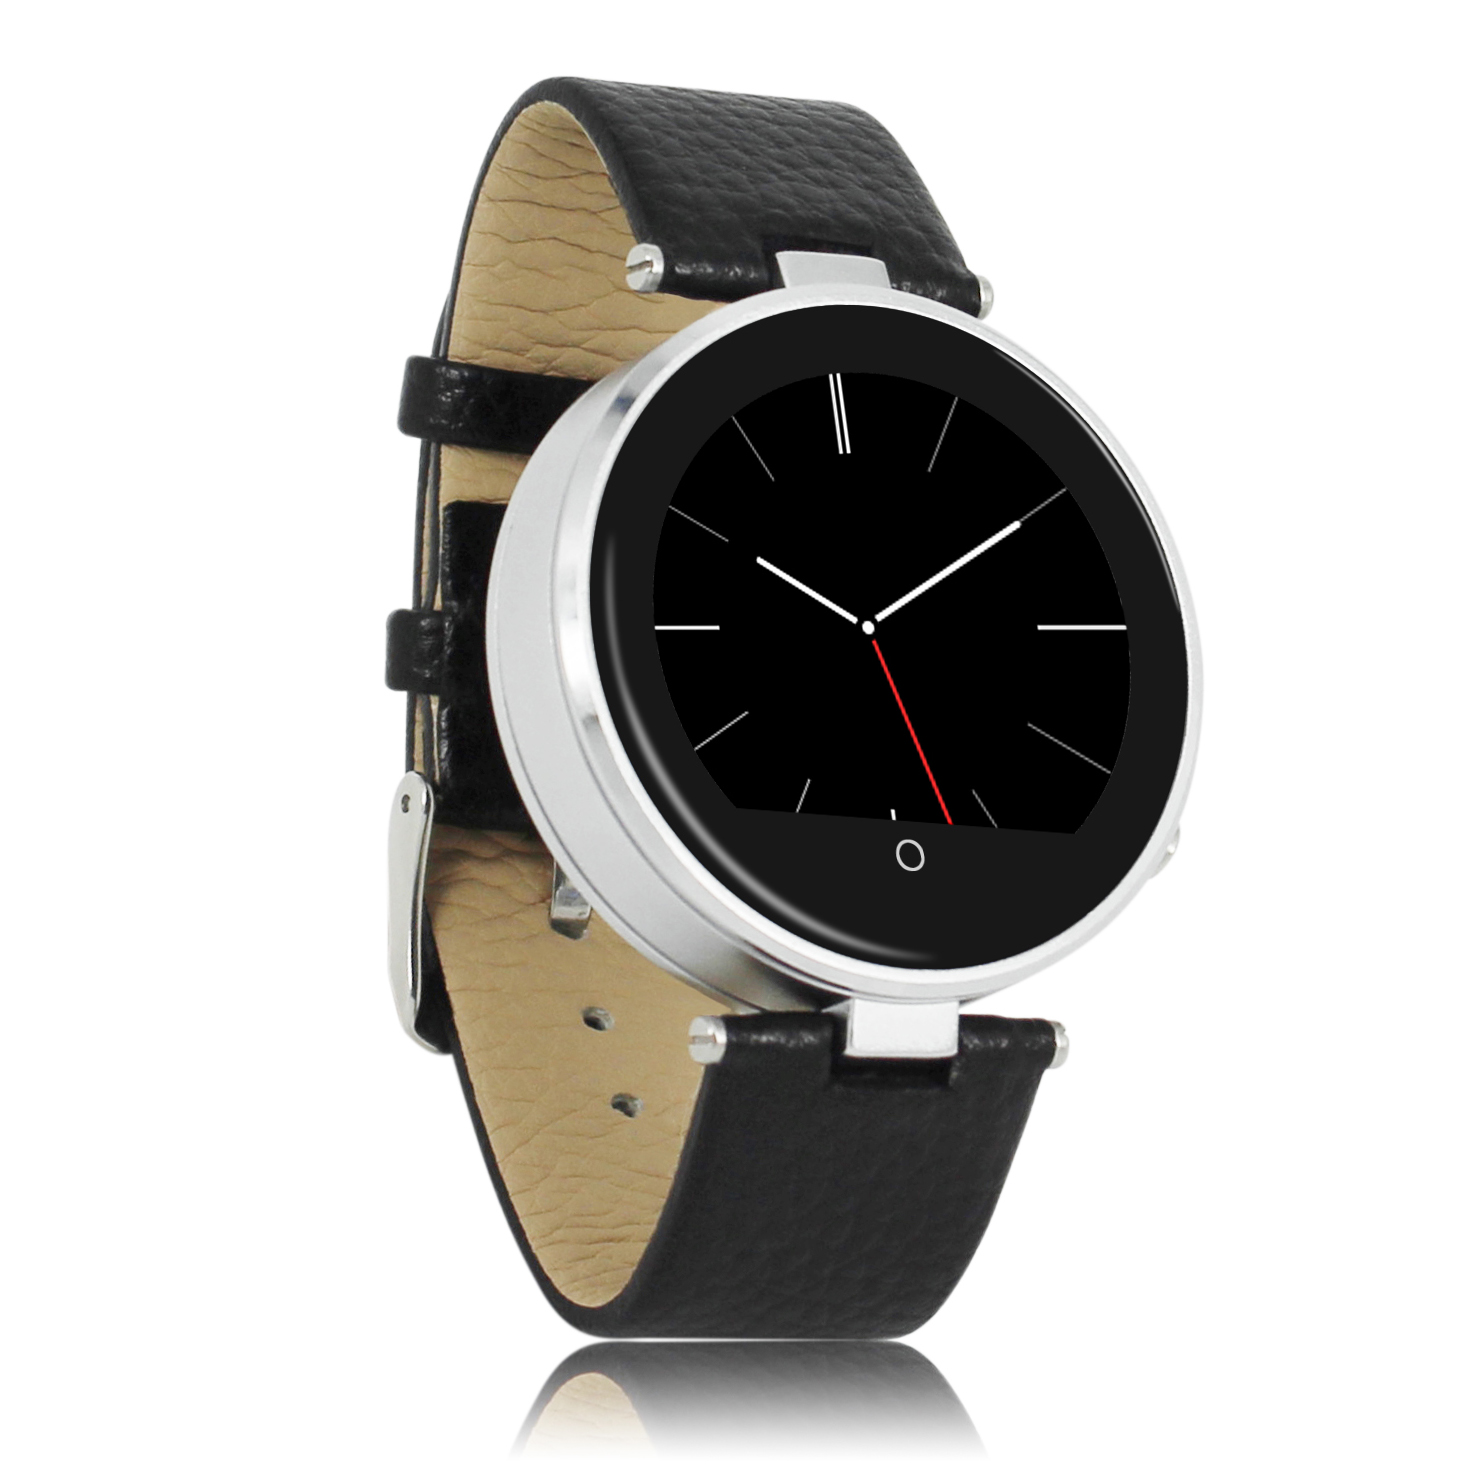 Touch Screen Bluetooth Smart Watch For Android Samsung S4 S5 S6 Edge Note5 TH198(China (Mainland))